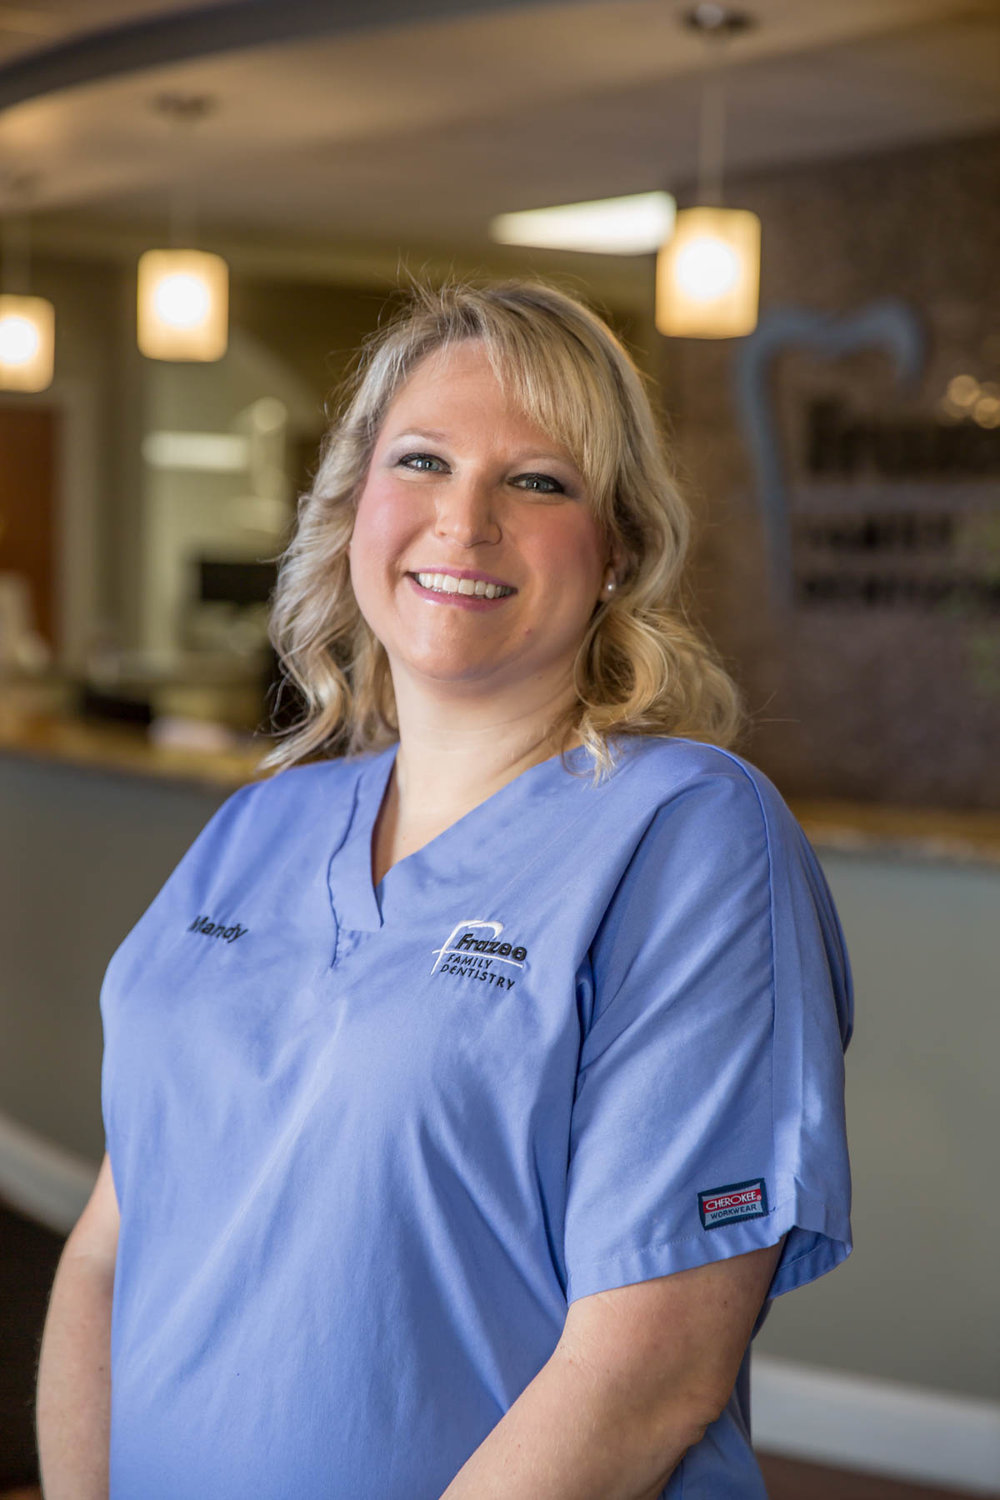 Meet Mandy at Frazee Family Dentistry.